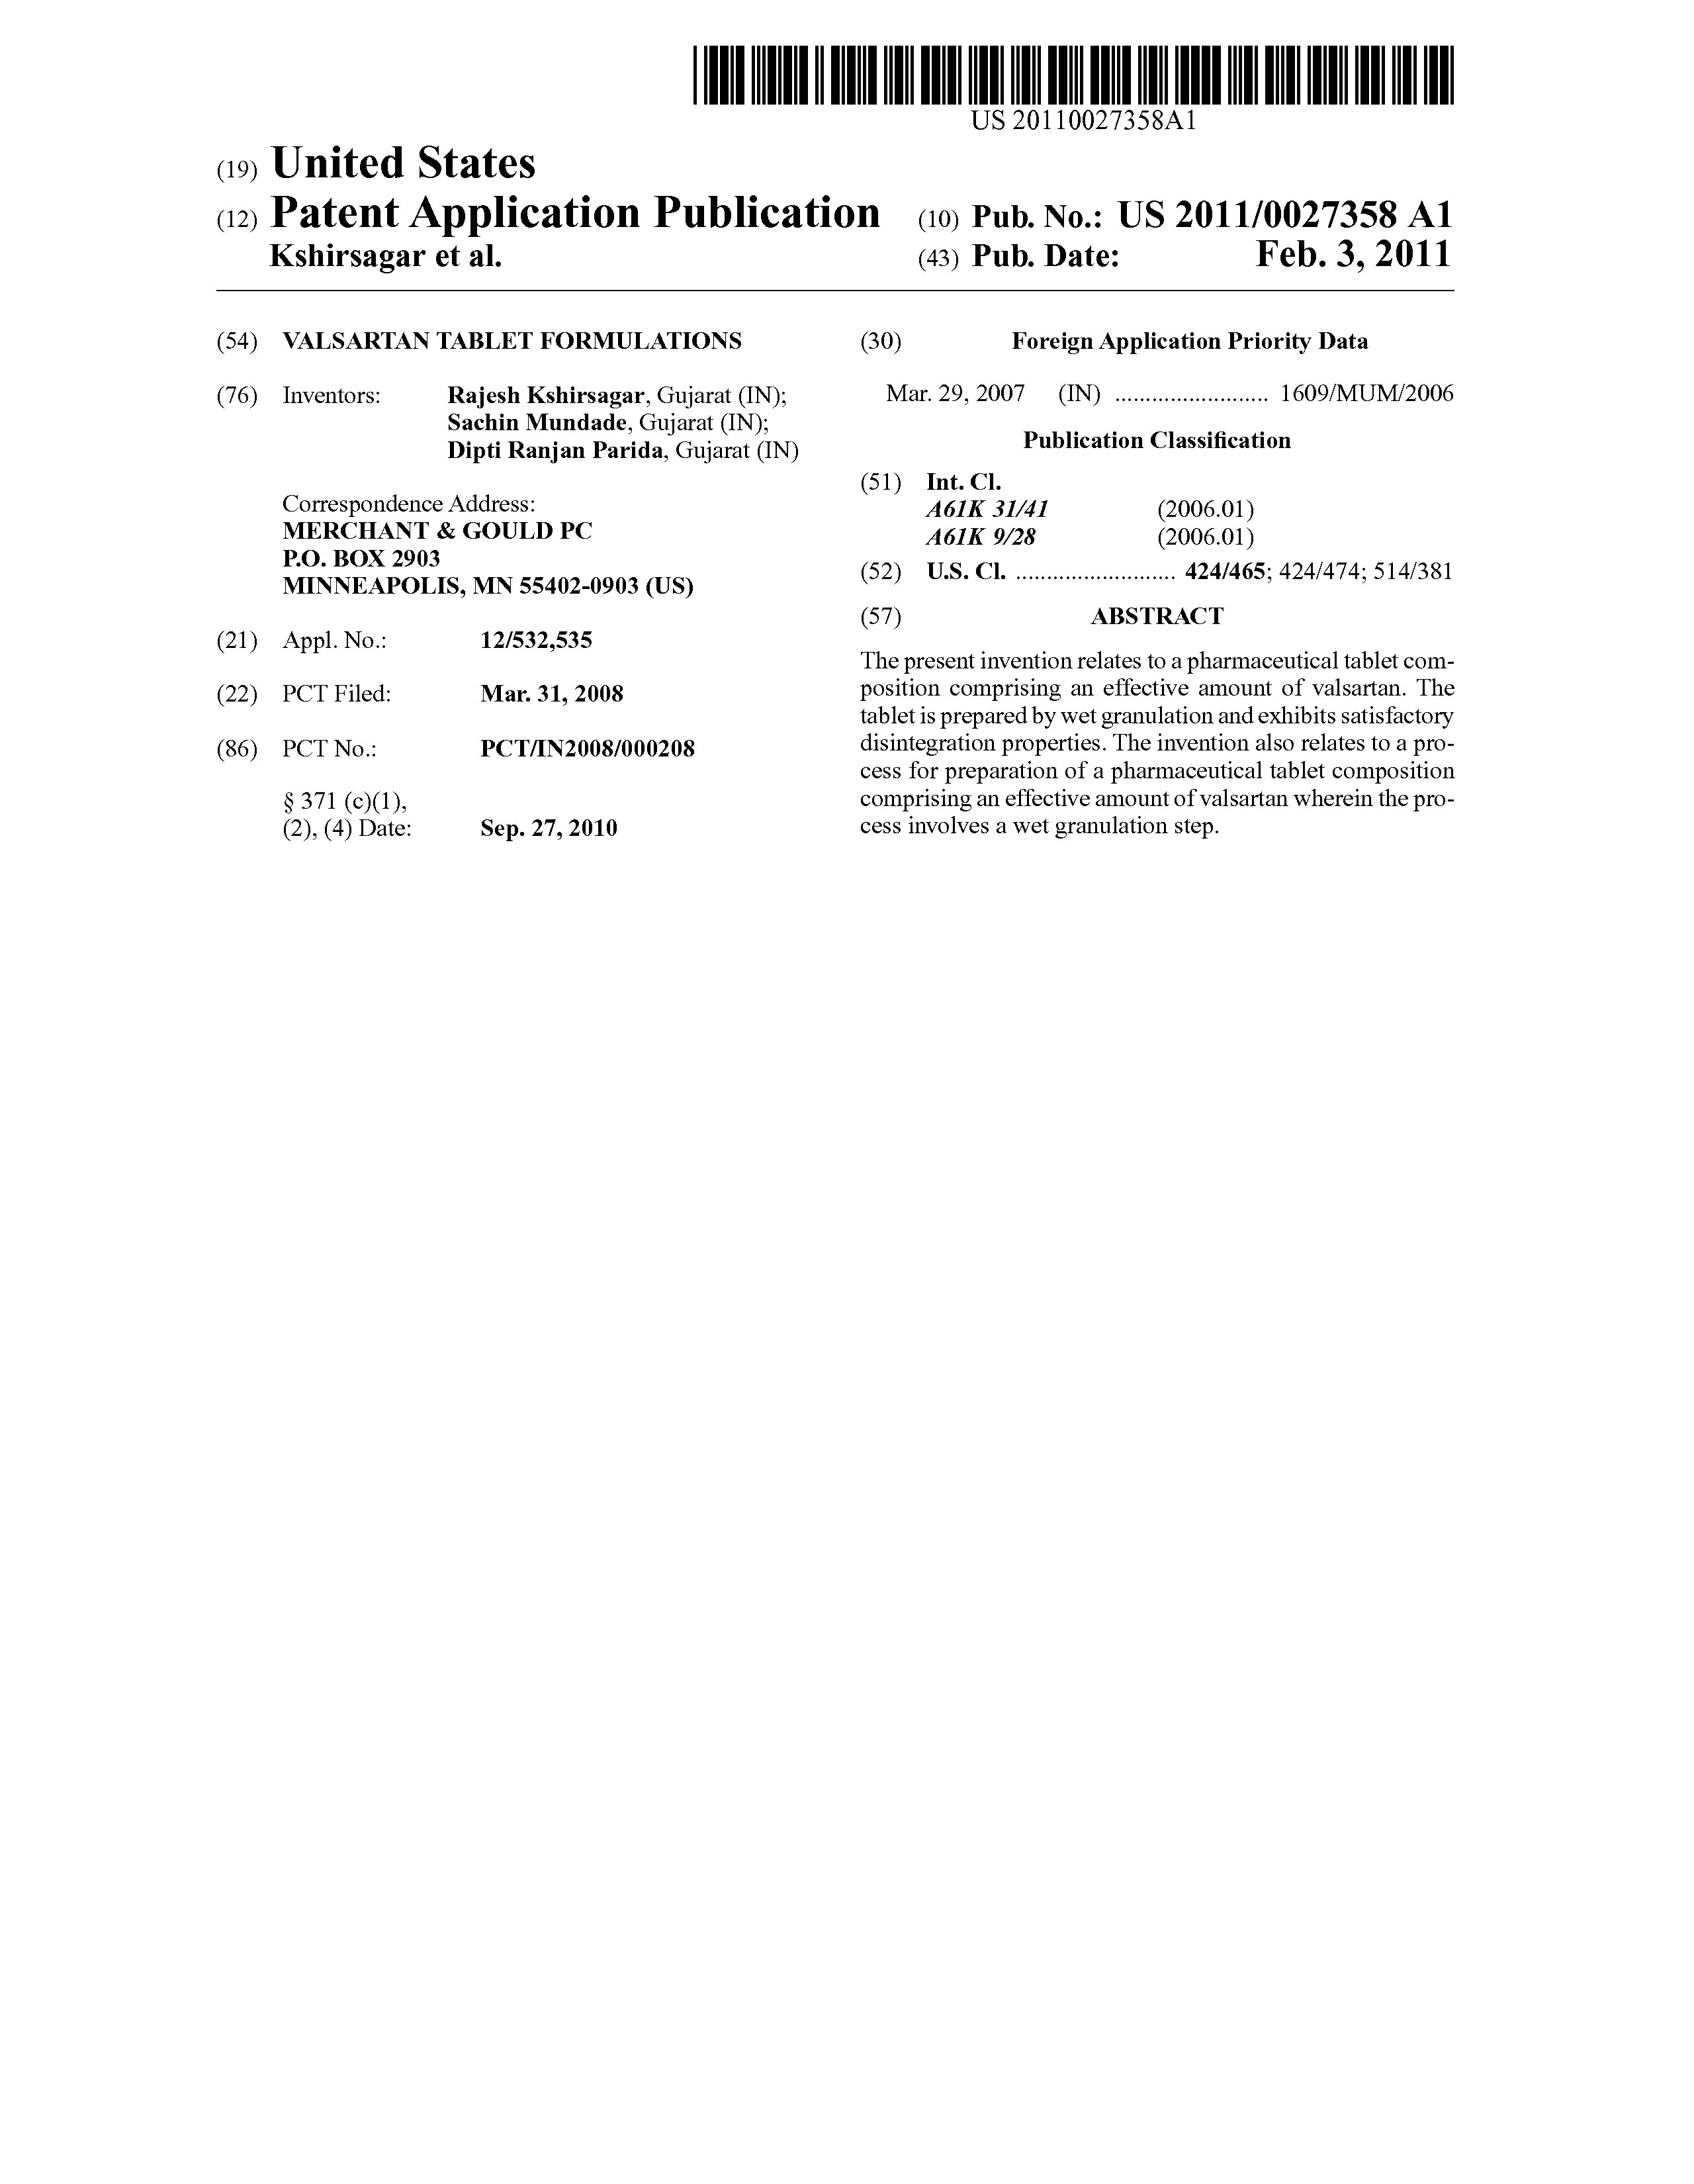 Diovan 40 mg novartis.doc - Patent Drawing